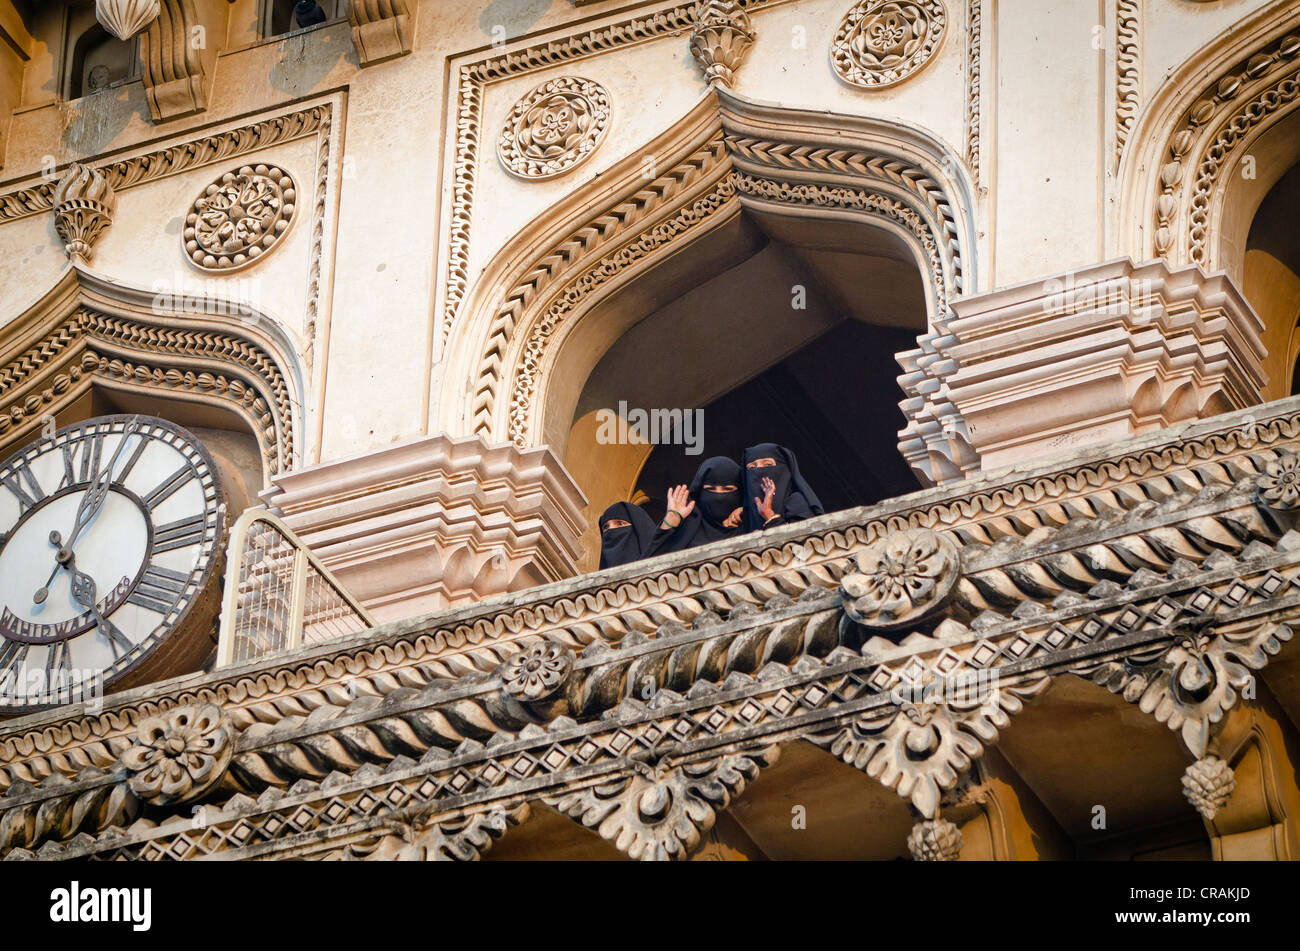 Muslim women waving down from the Charminar monument, Hyderabad, Andhra Pradesh, India, Asia - Stock Image